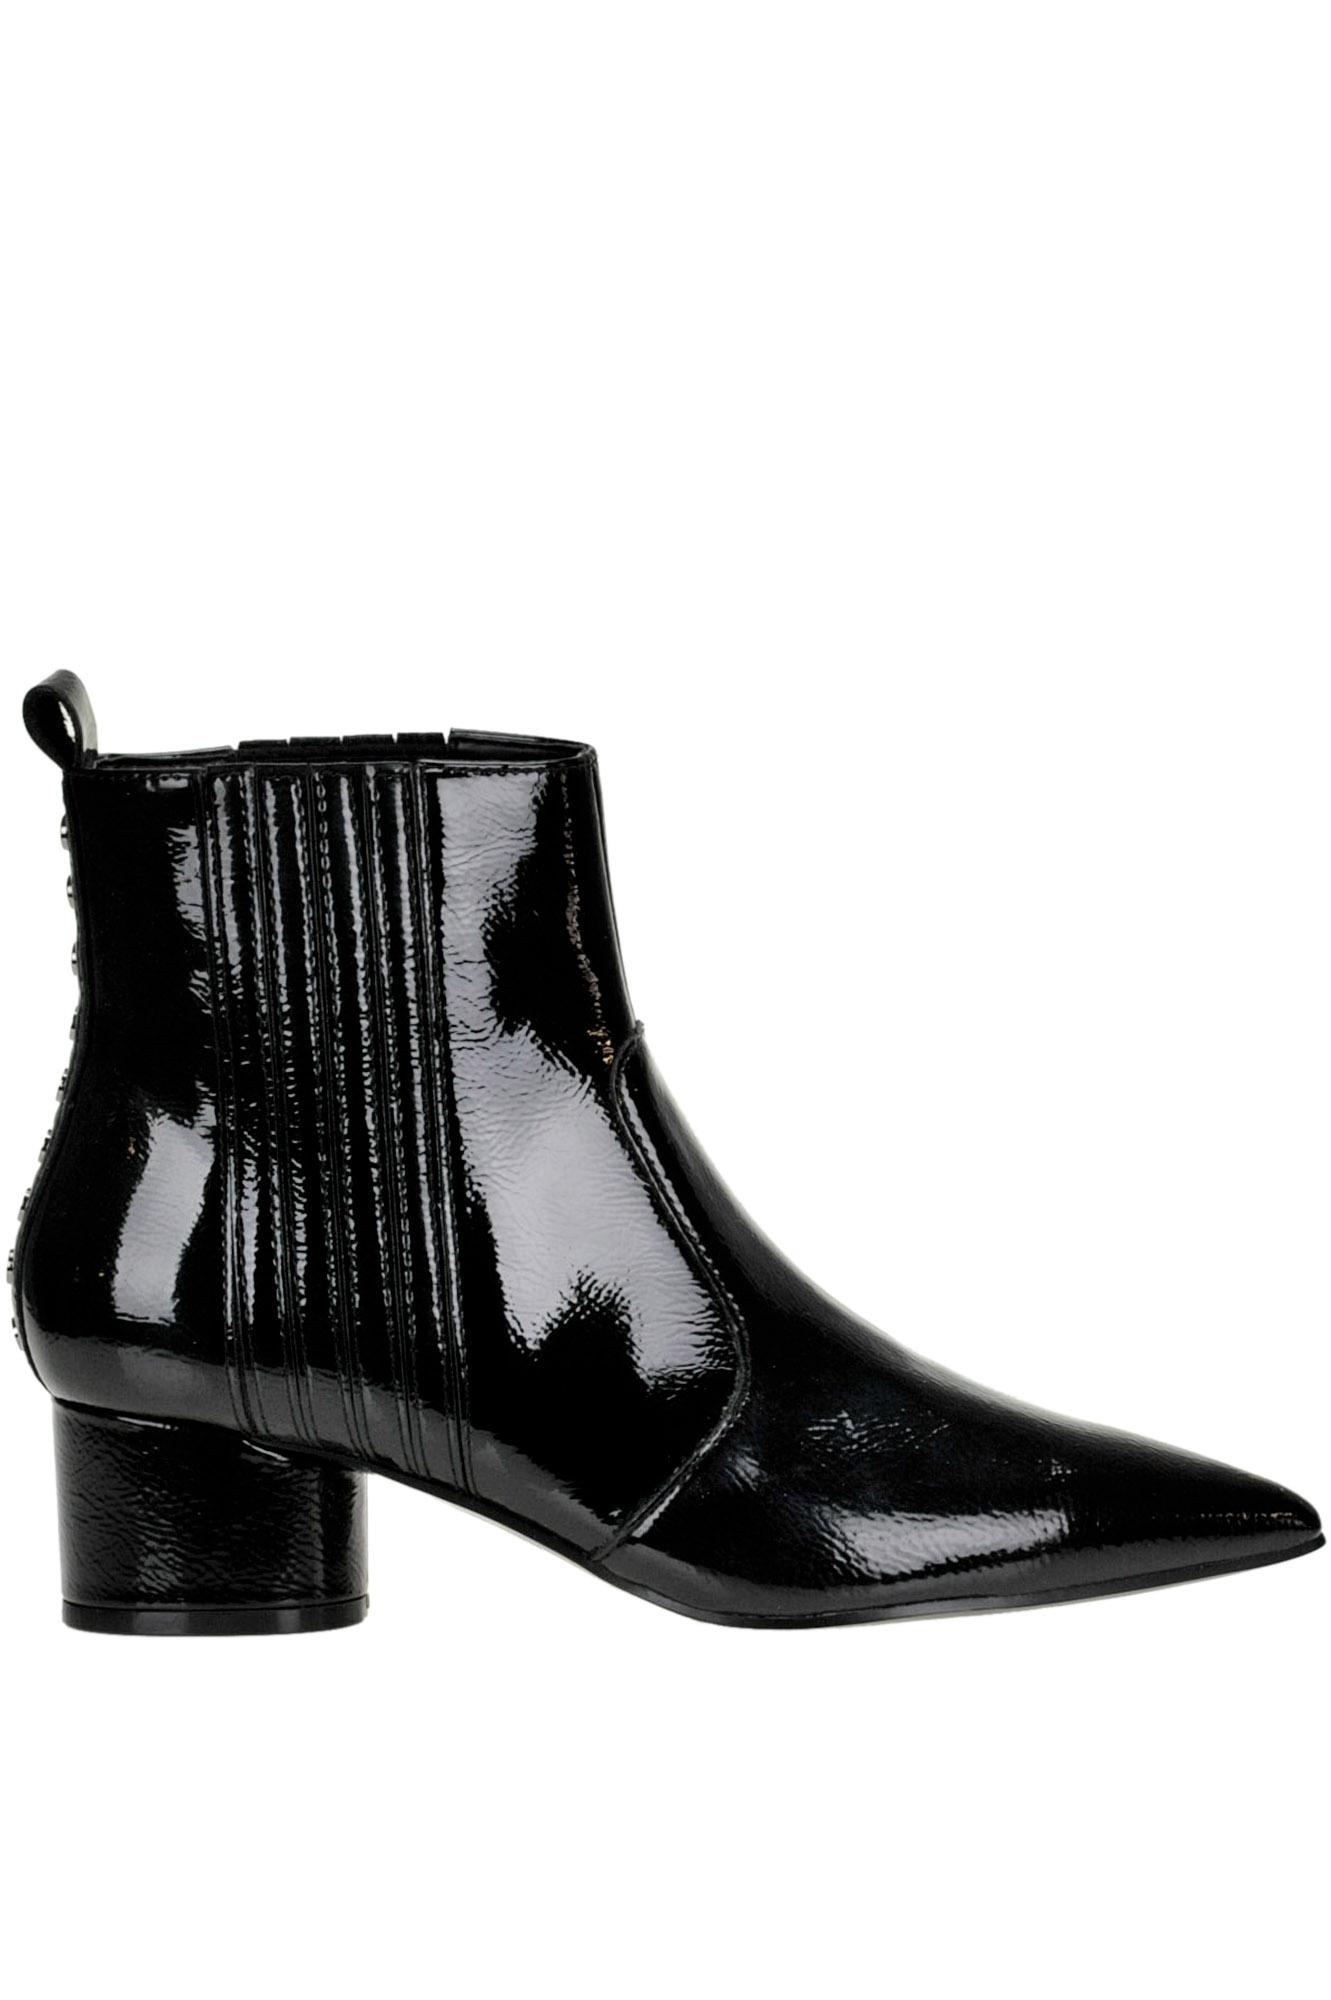 f27e1e2f973 Kendall + Kylie Laila Patent-leather Ankle-boots in Black - Lyst